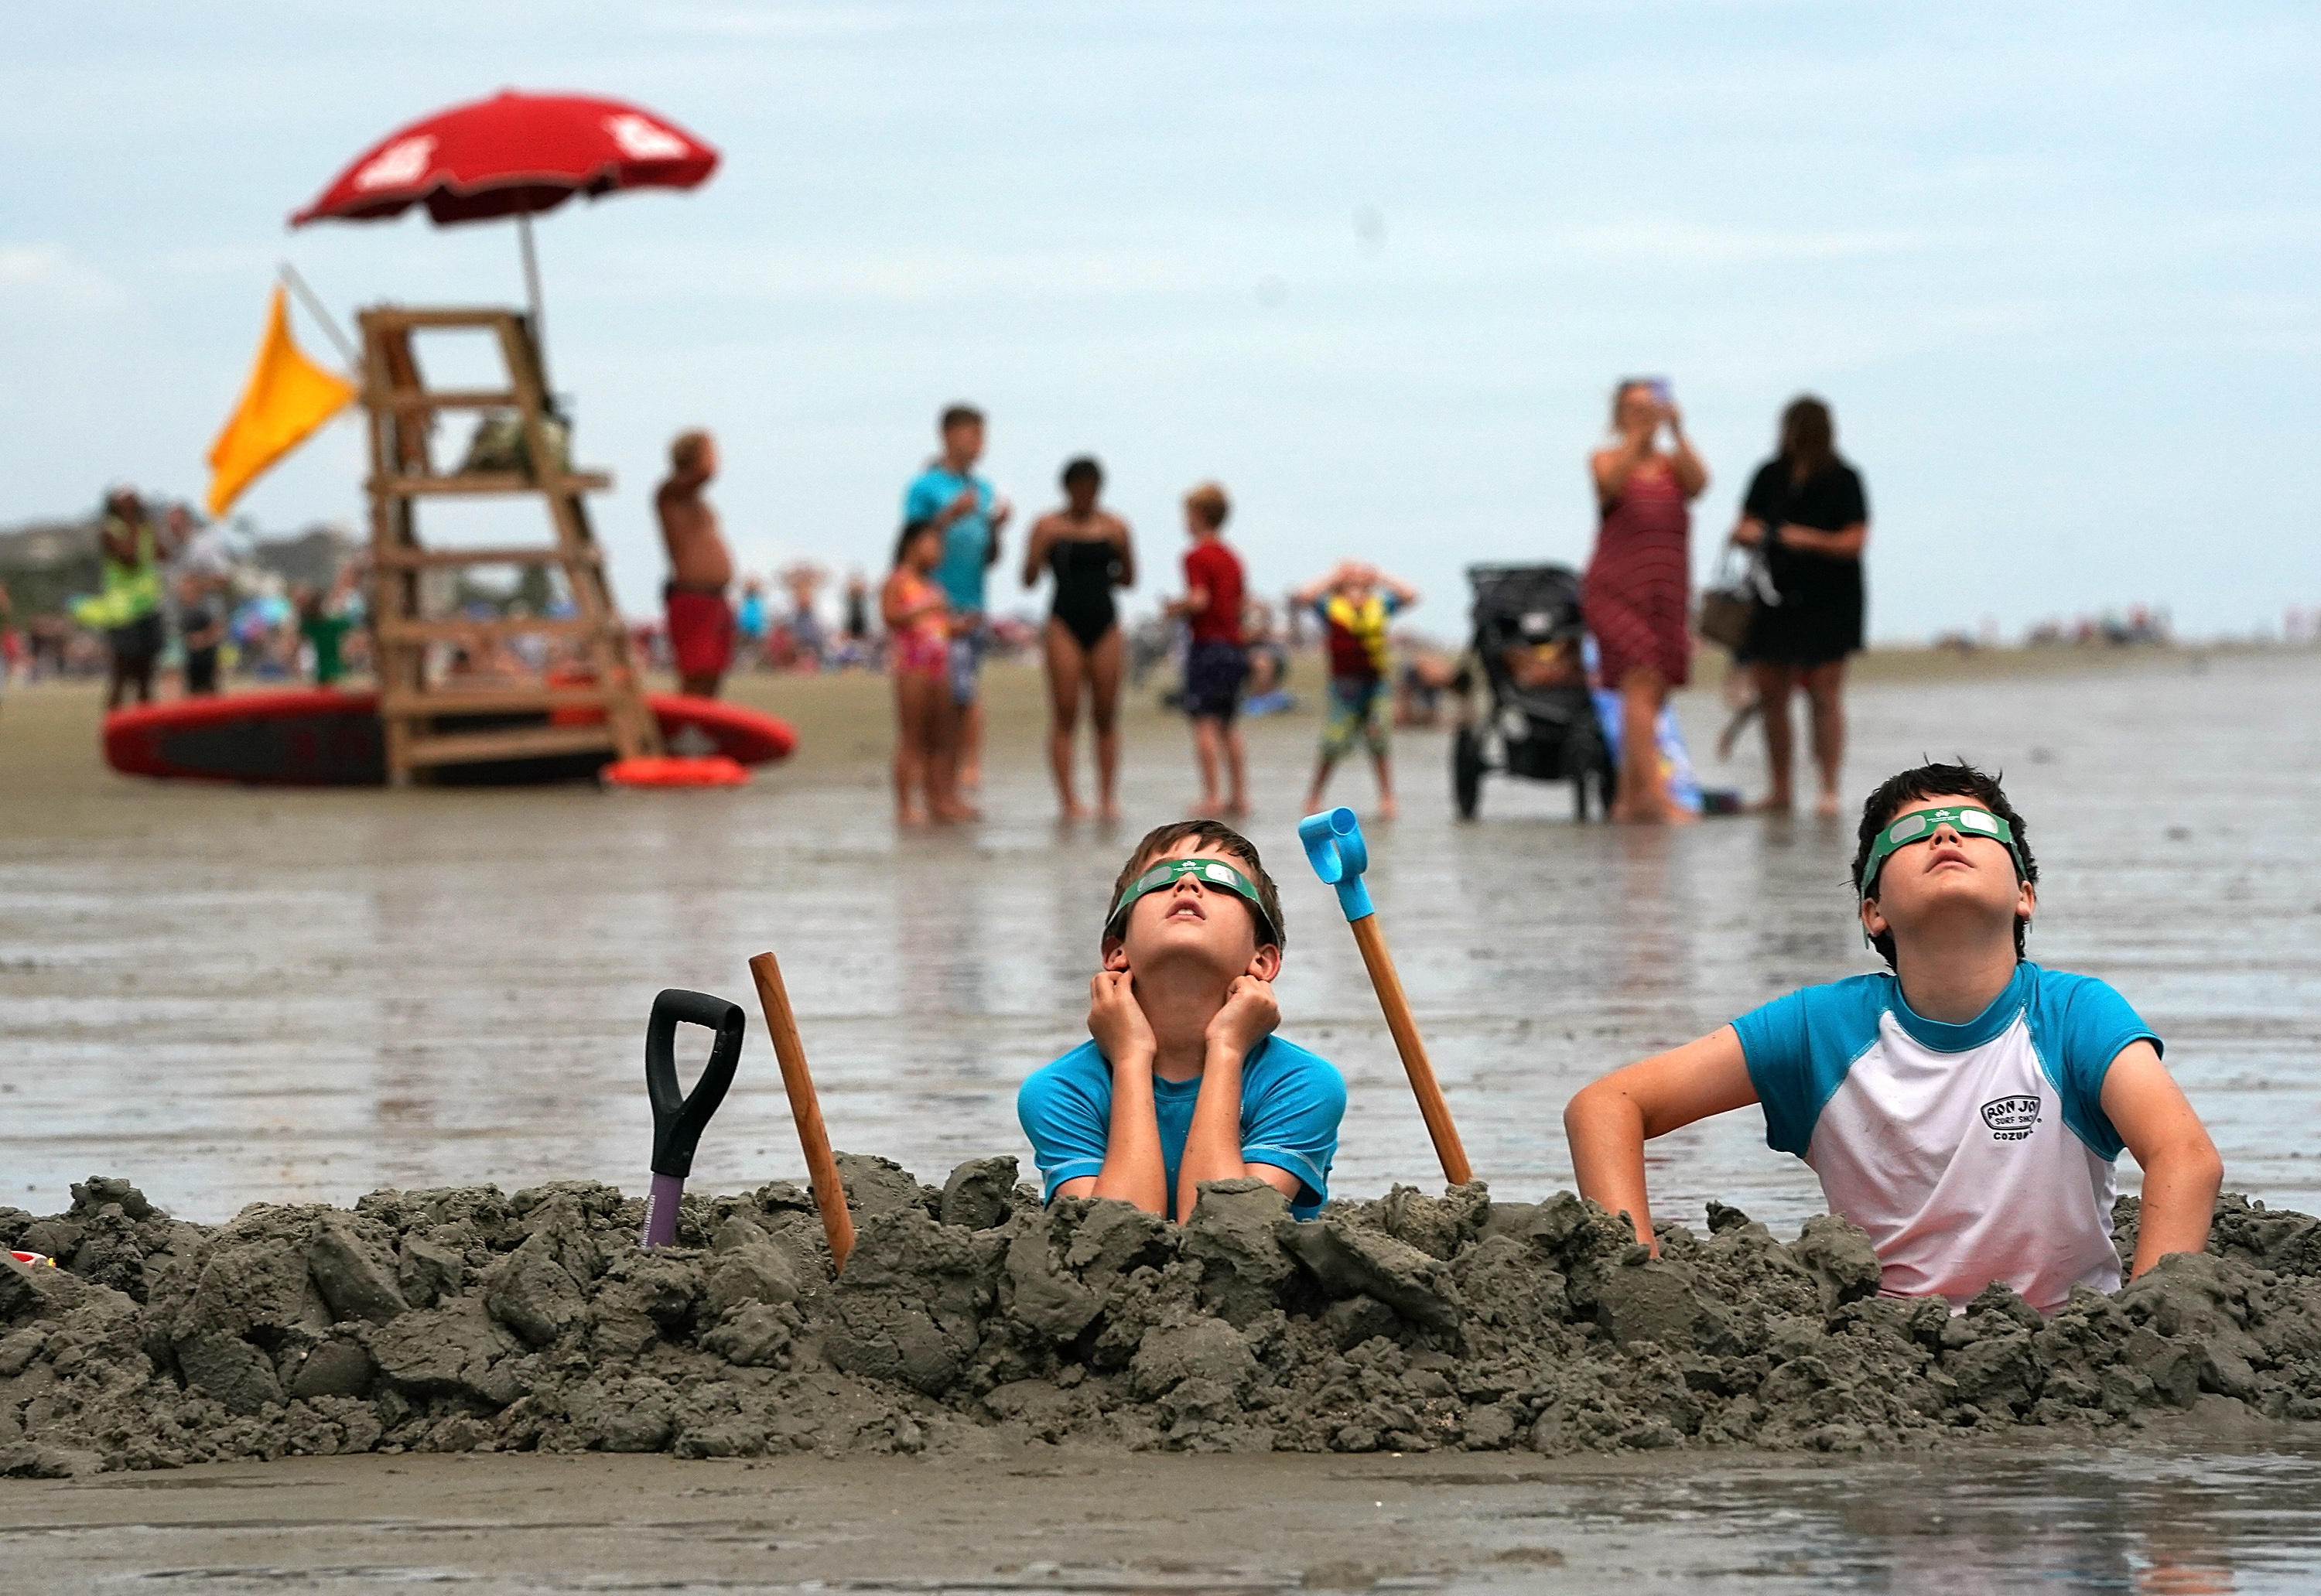 Brothers Chris and Gabe Fabiano watch the first solar eclipse to sweep across the United States in over 99 years on the beach August 21, 2017 on Hilton Head Island, South Carolina.